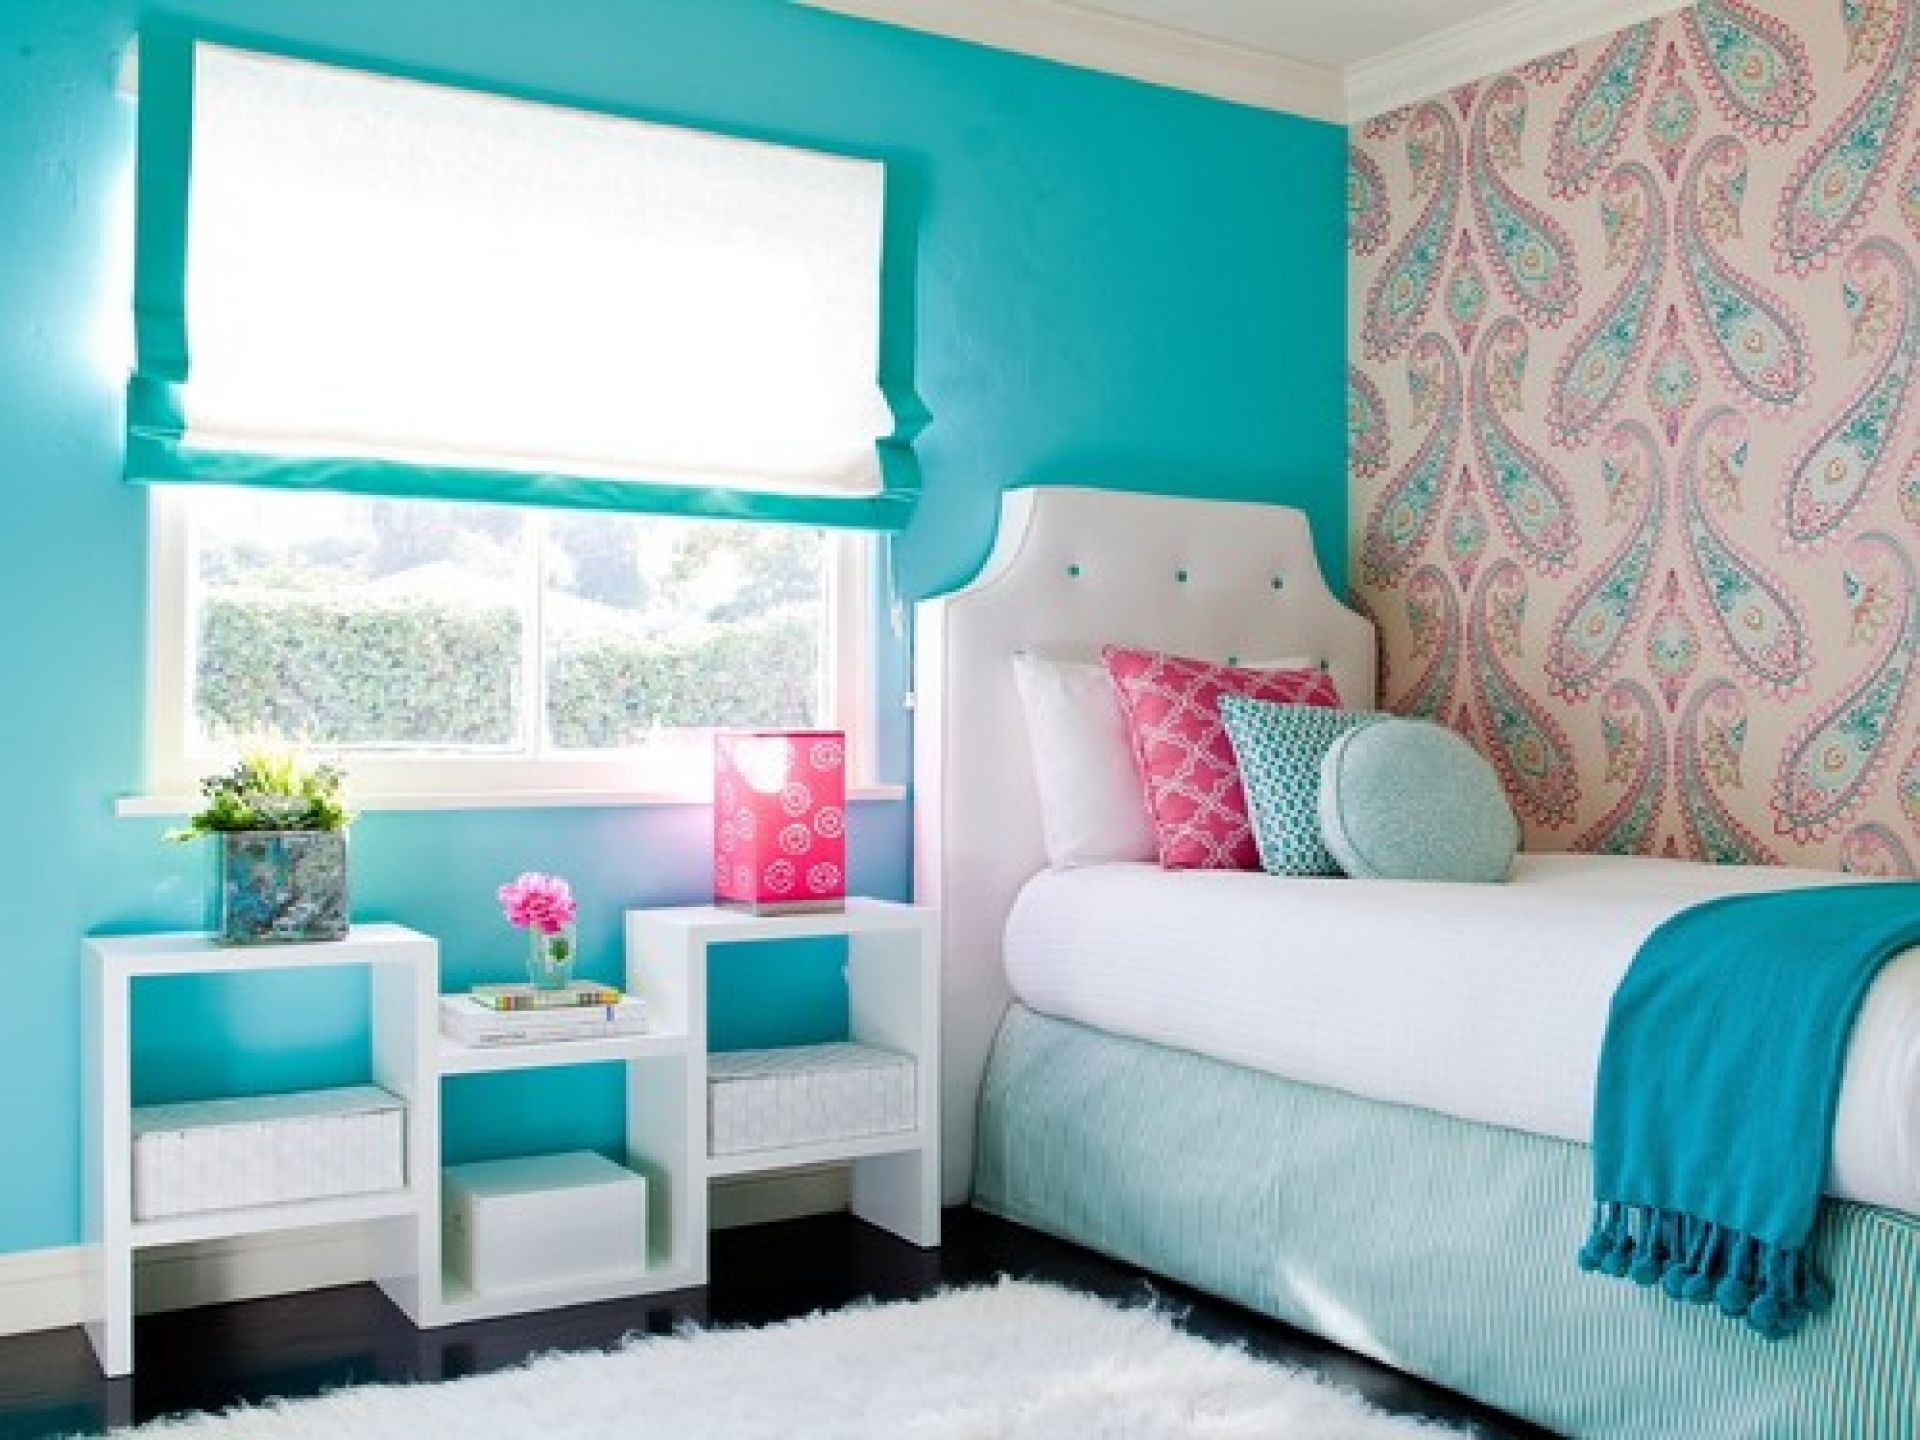 Simple design comfy room colors teenage girl bedroom wall for Decorate bedroom ideas for teenage girl